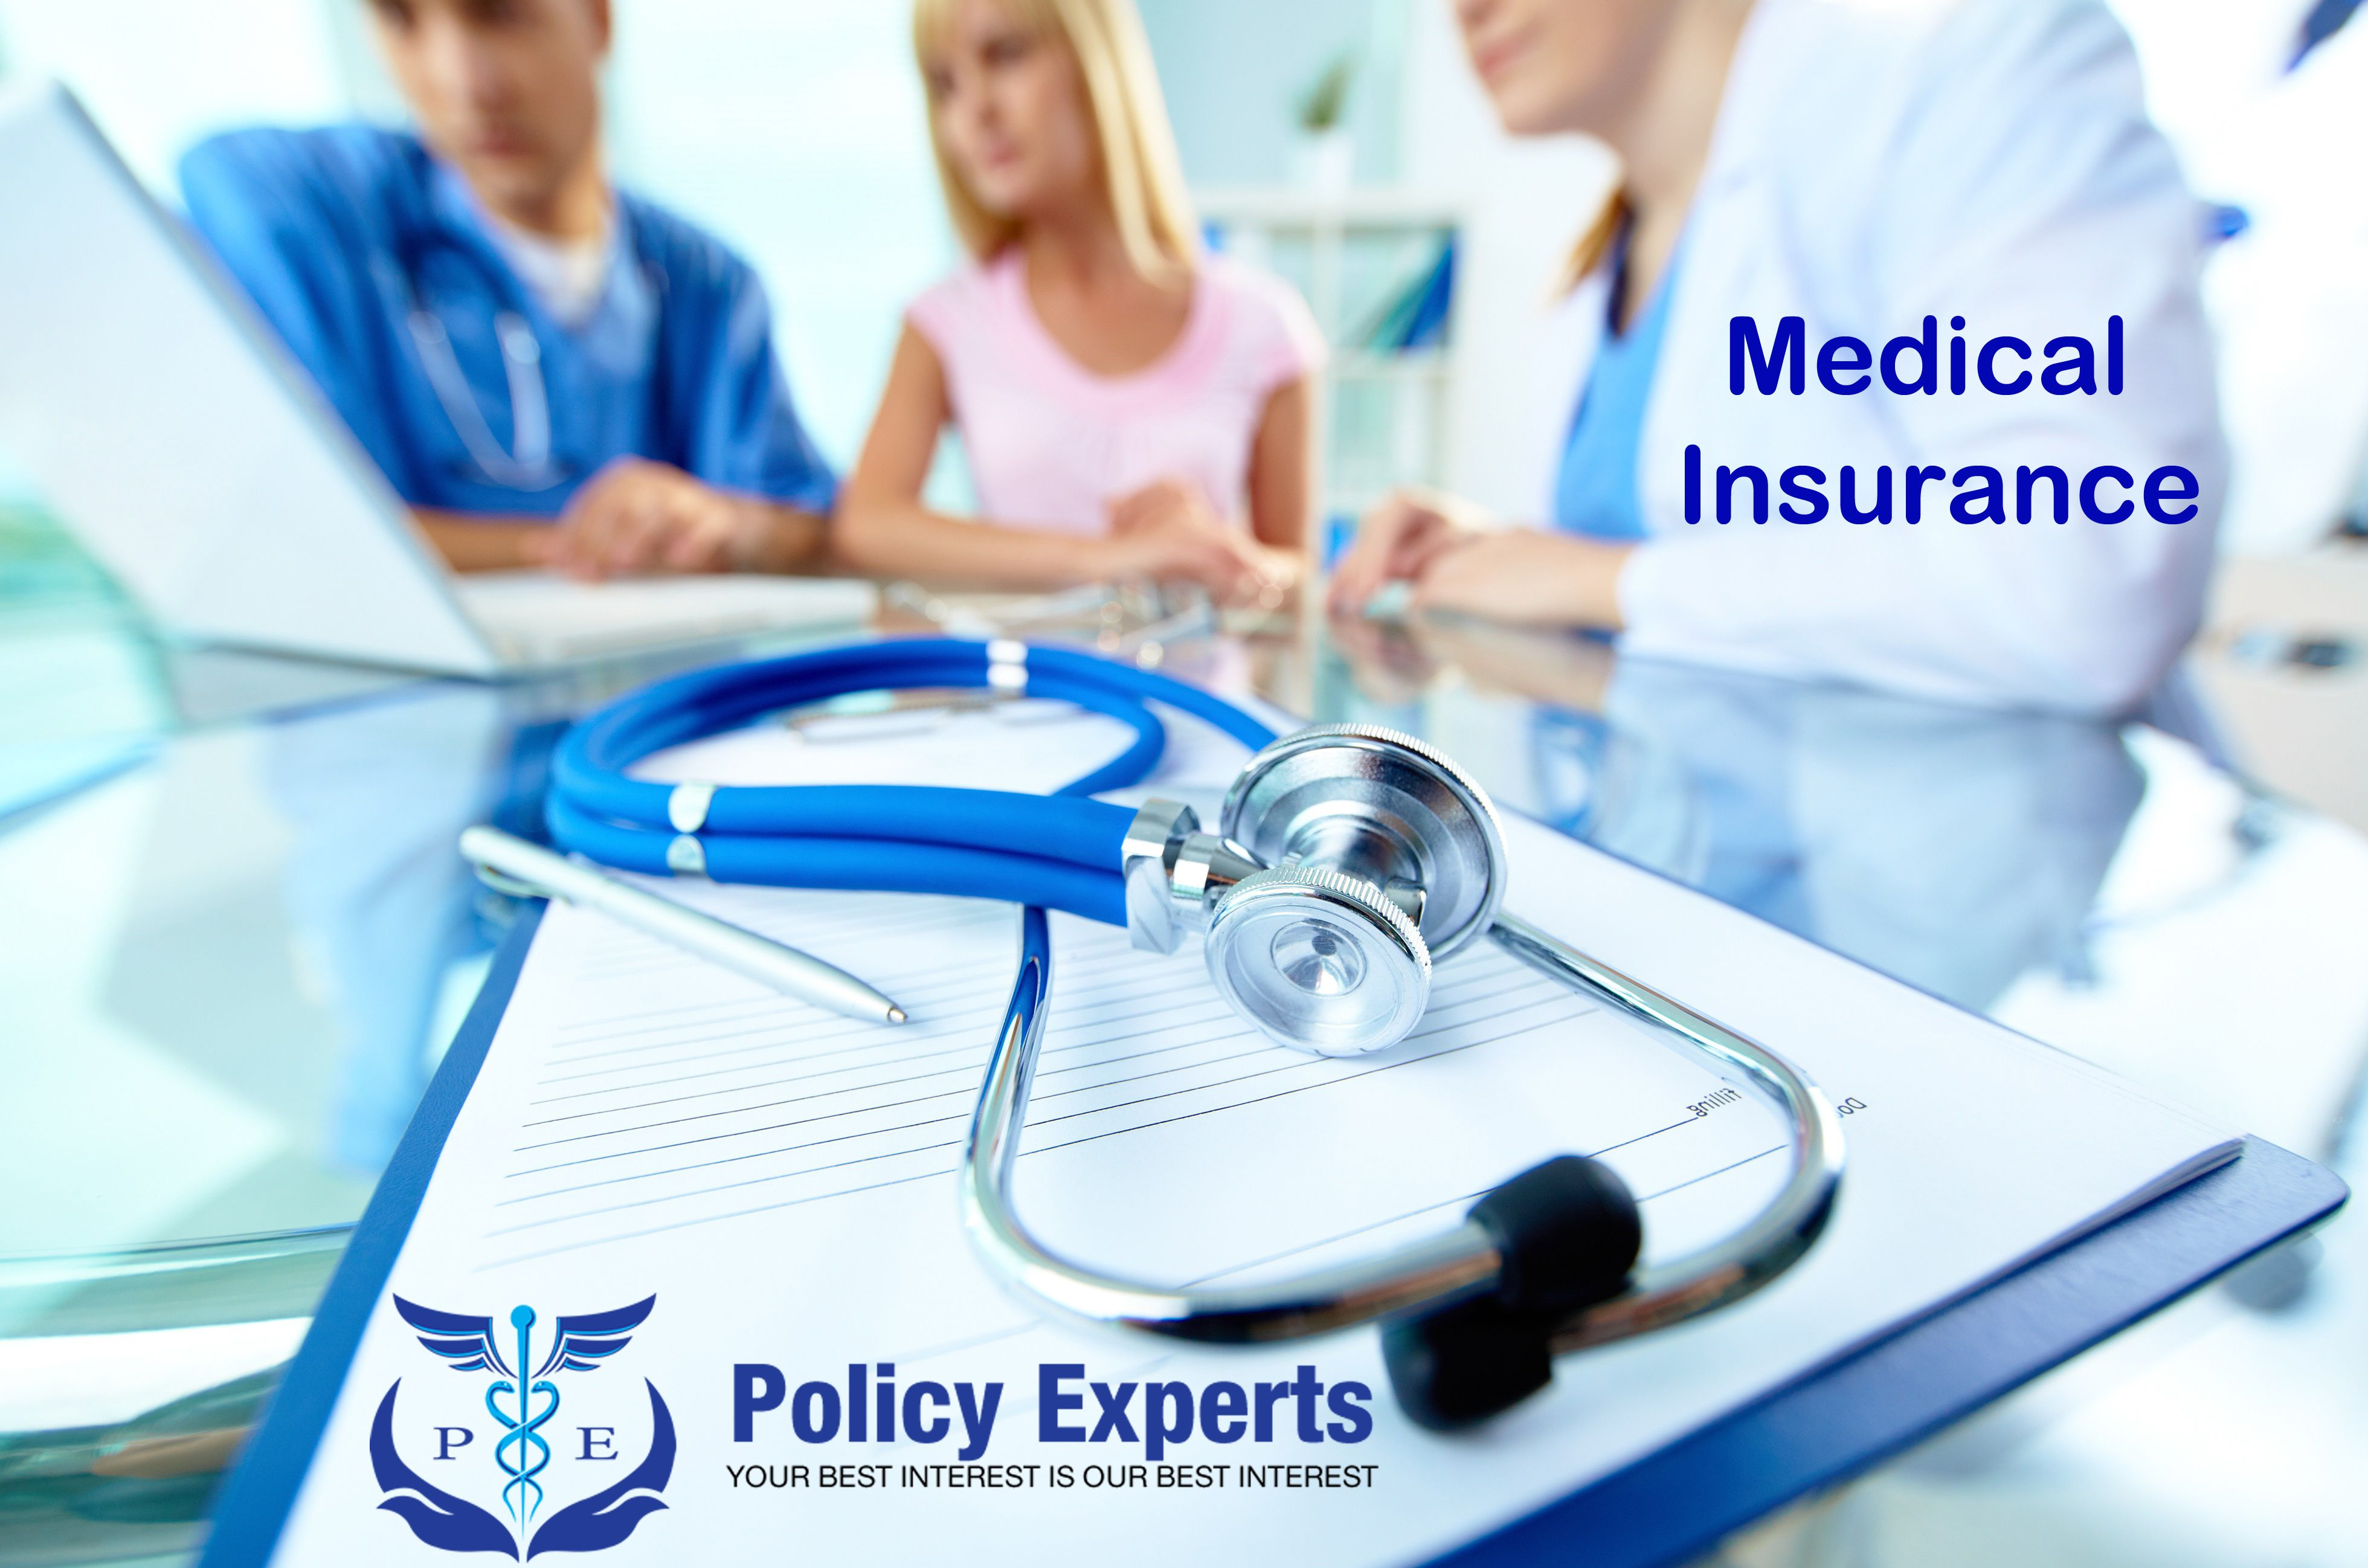 Policy Experts Has Well Reputed And Experienced Advisor For Any